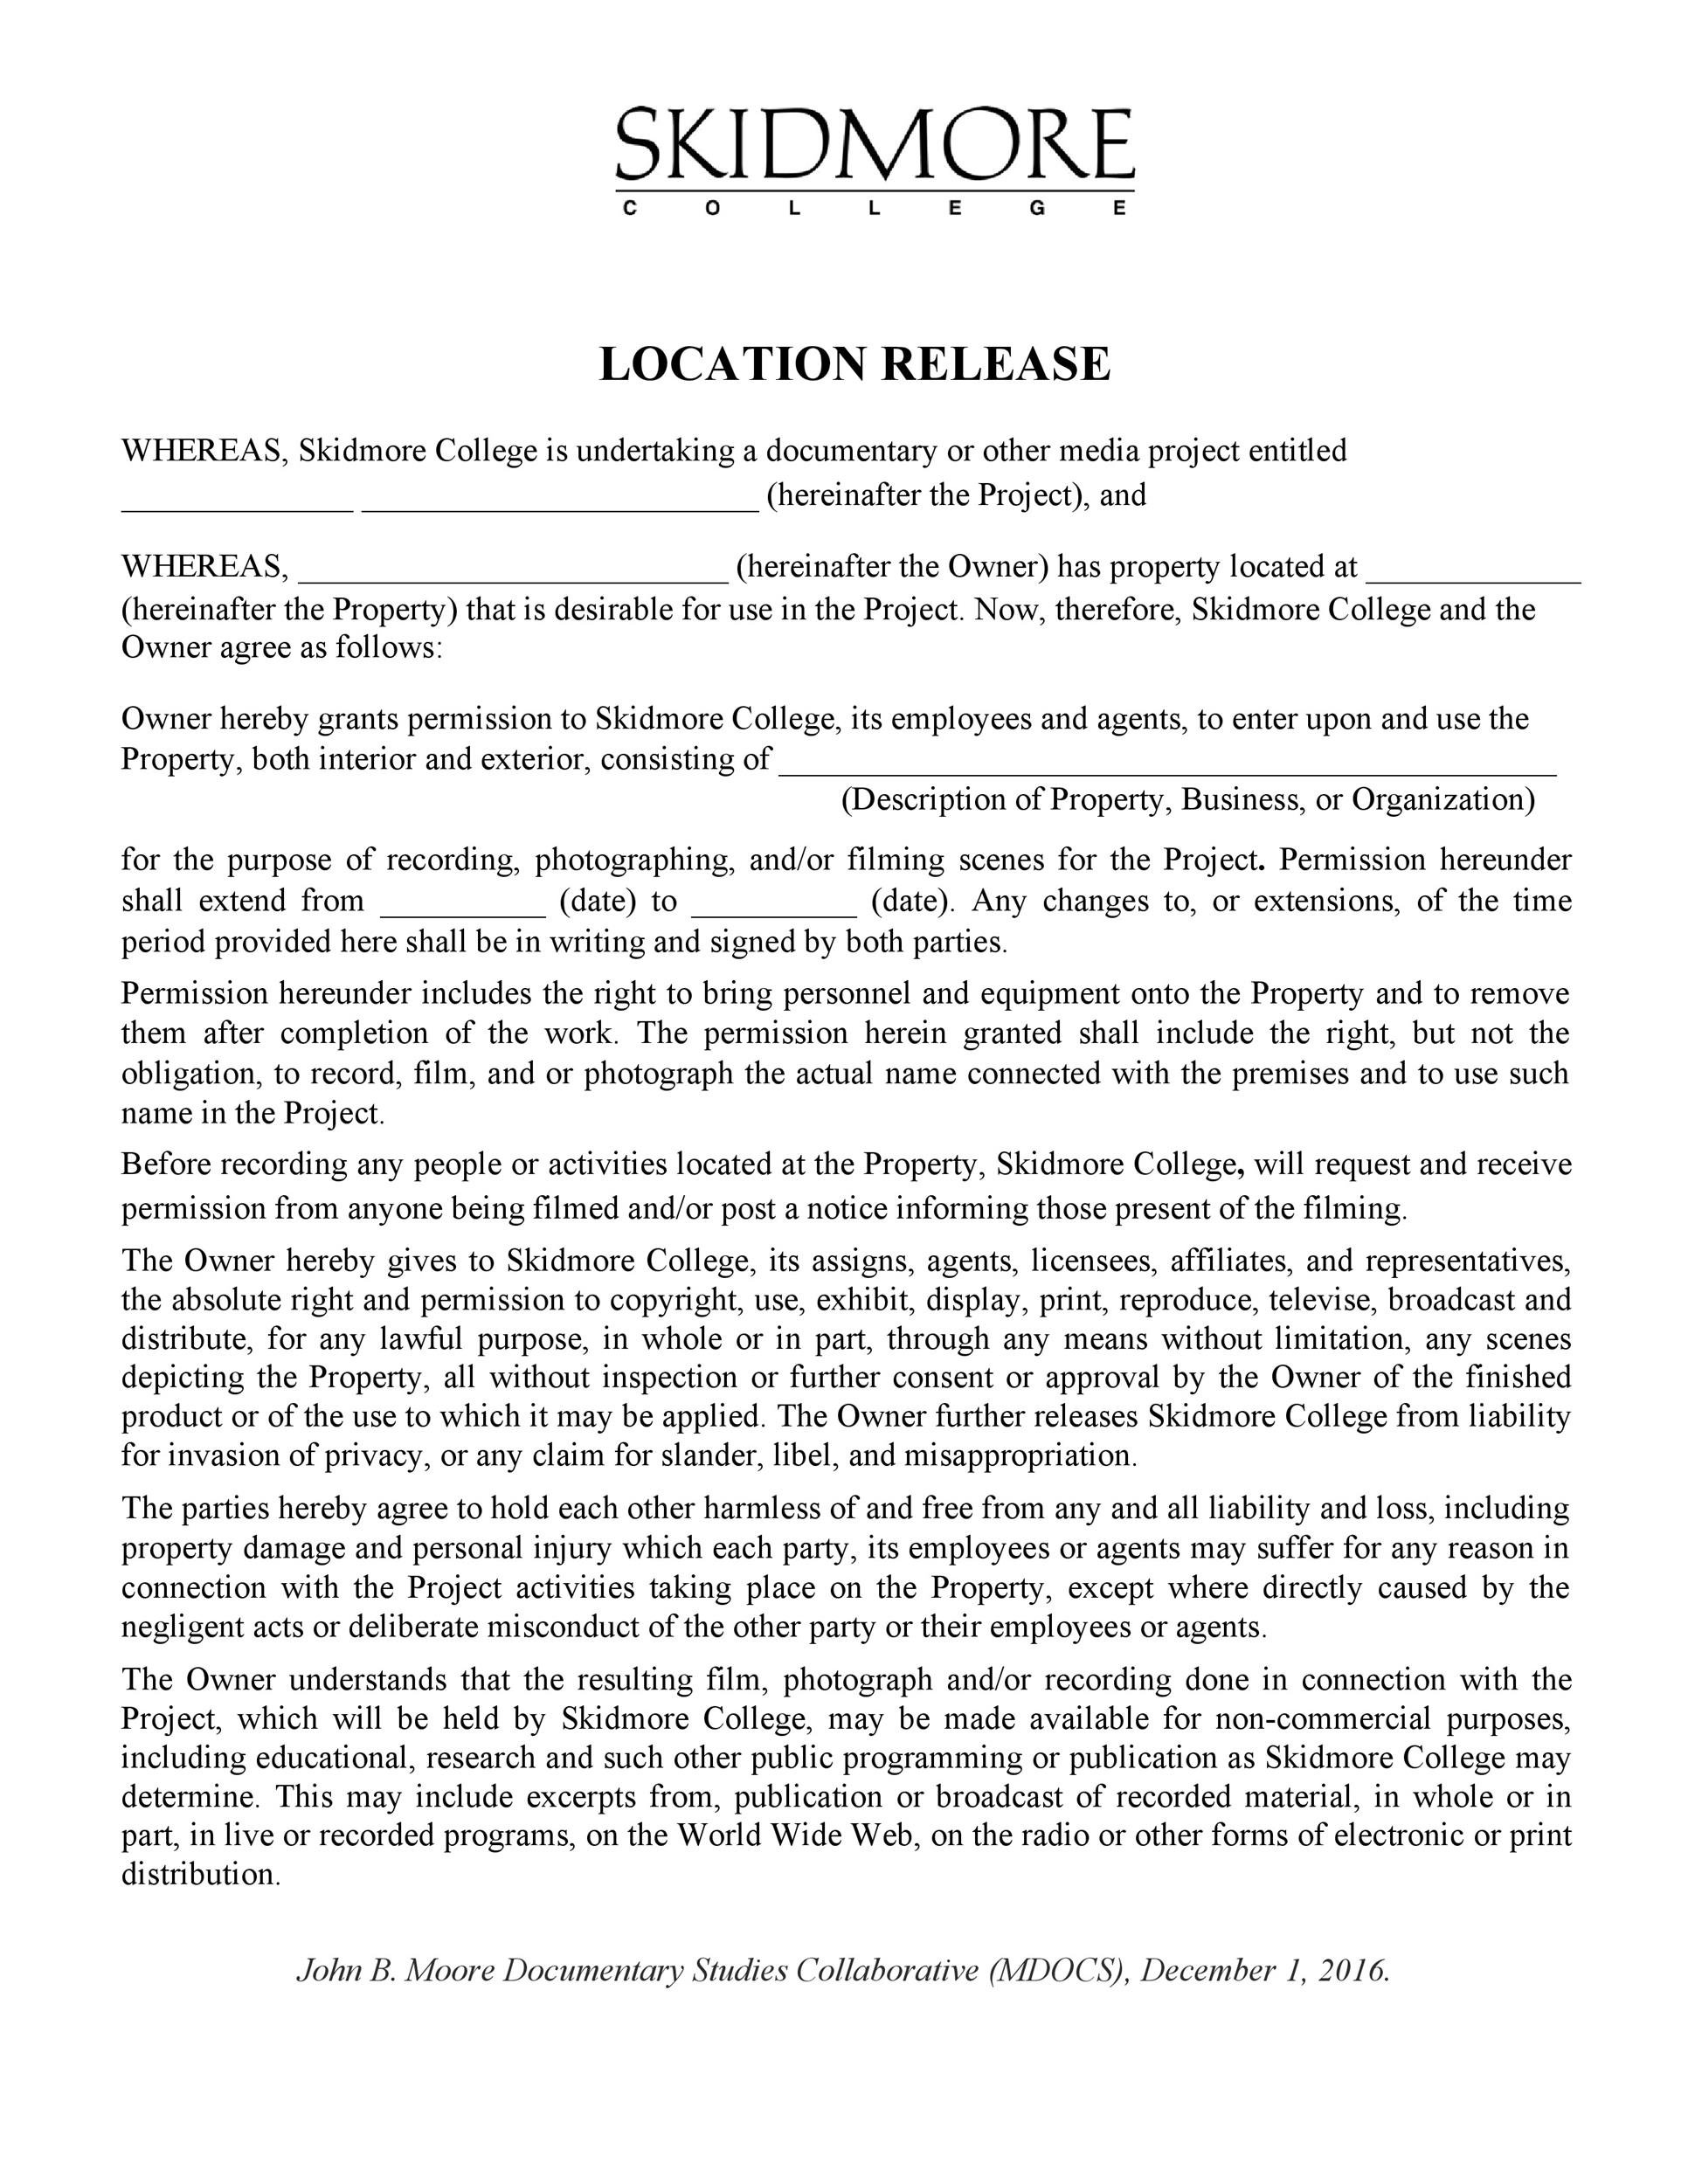 Free location release form 04